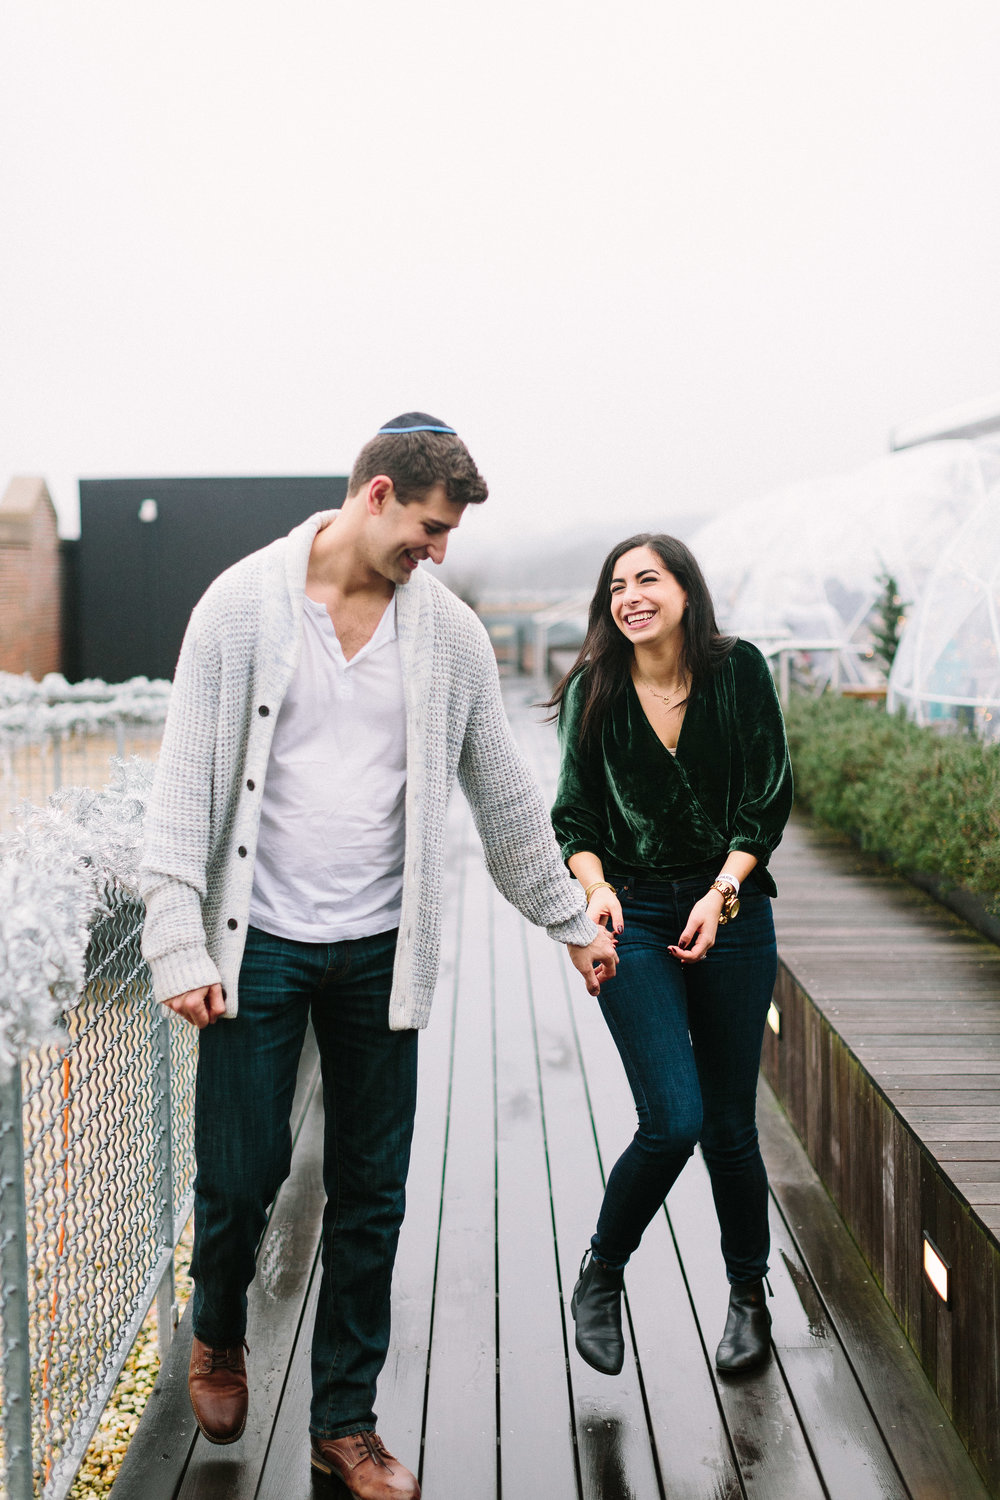 atlanta_proposal_photographer_ice_skating_rooftop_ponce_city_surprise_jewish_couple_1200.jpg